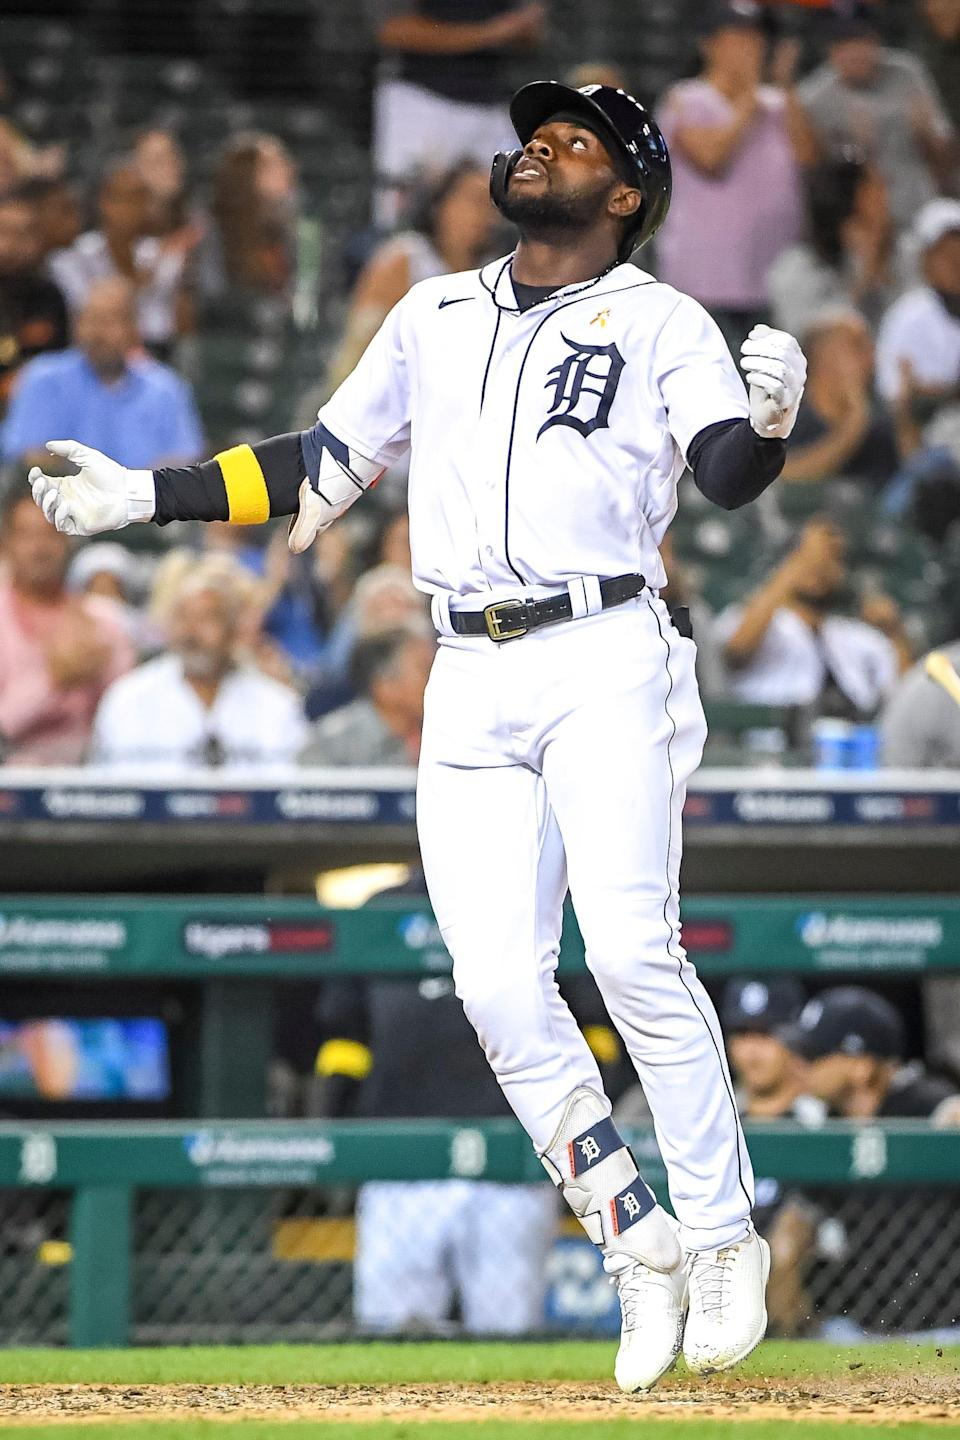 Akil Baddoo #60 of the Detroit Tigers celebrates a solo home run against the Oakland Athletics during the bottom of the fifth inning at Comerica Park on September 01, 2021 in Detroit, Michigan.